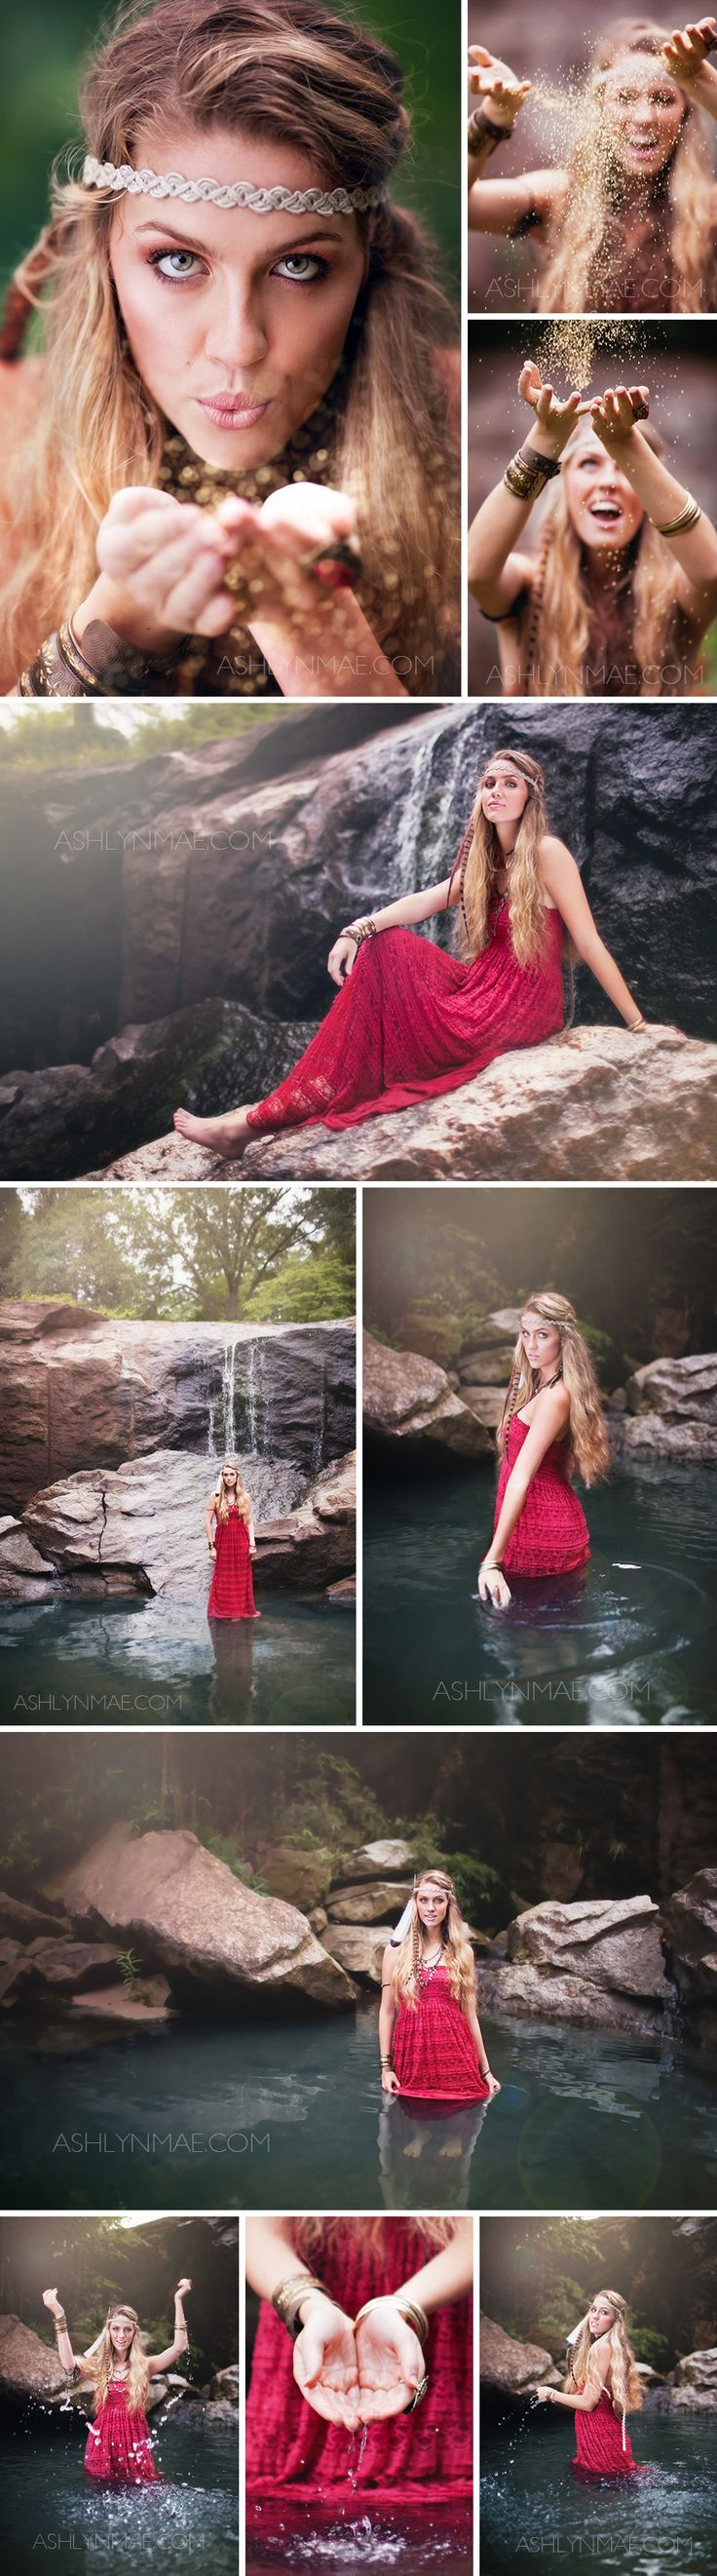 ©️️ Ashlyn Mae Photography (http://ashlynmae.com) High School Senior Photography #senior #photos #style #boho